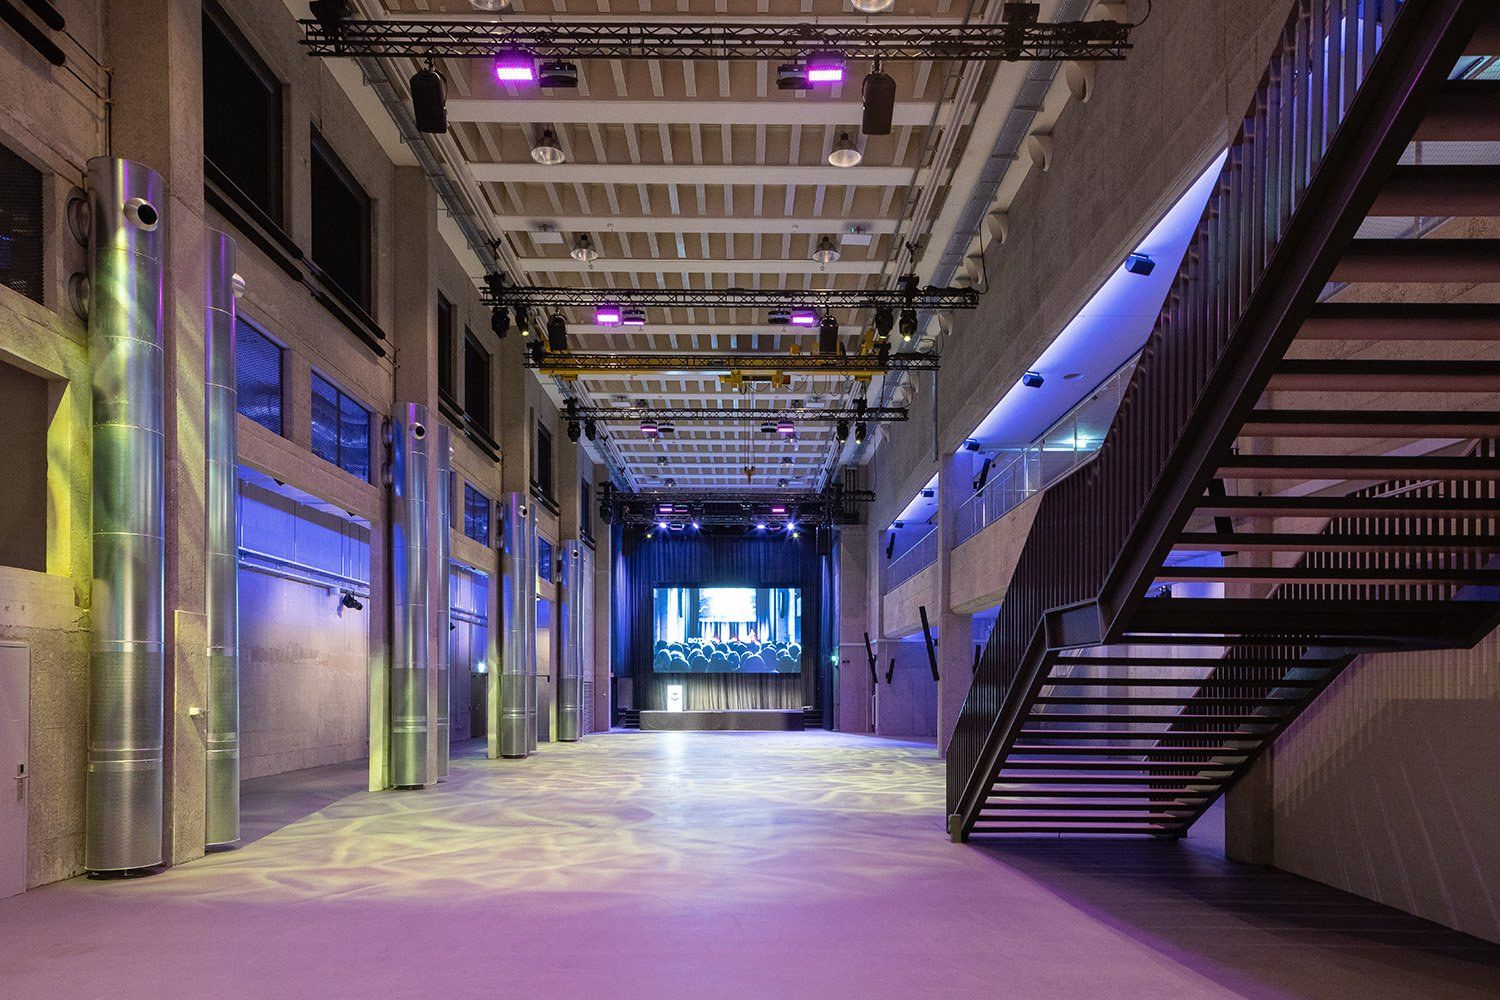 The event hall. Conversion of a former printing hall. Daniel Werder